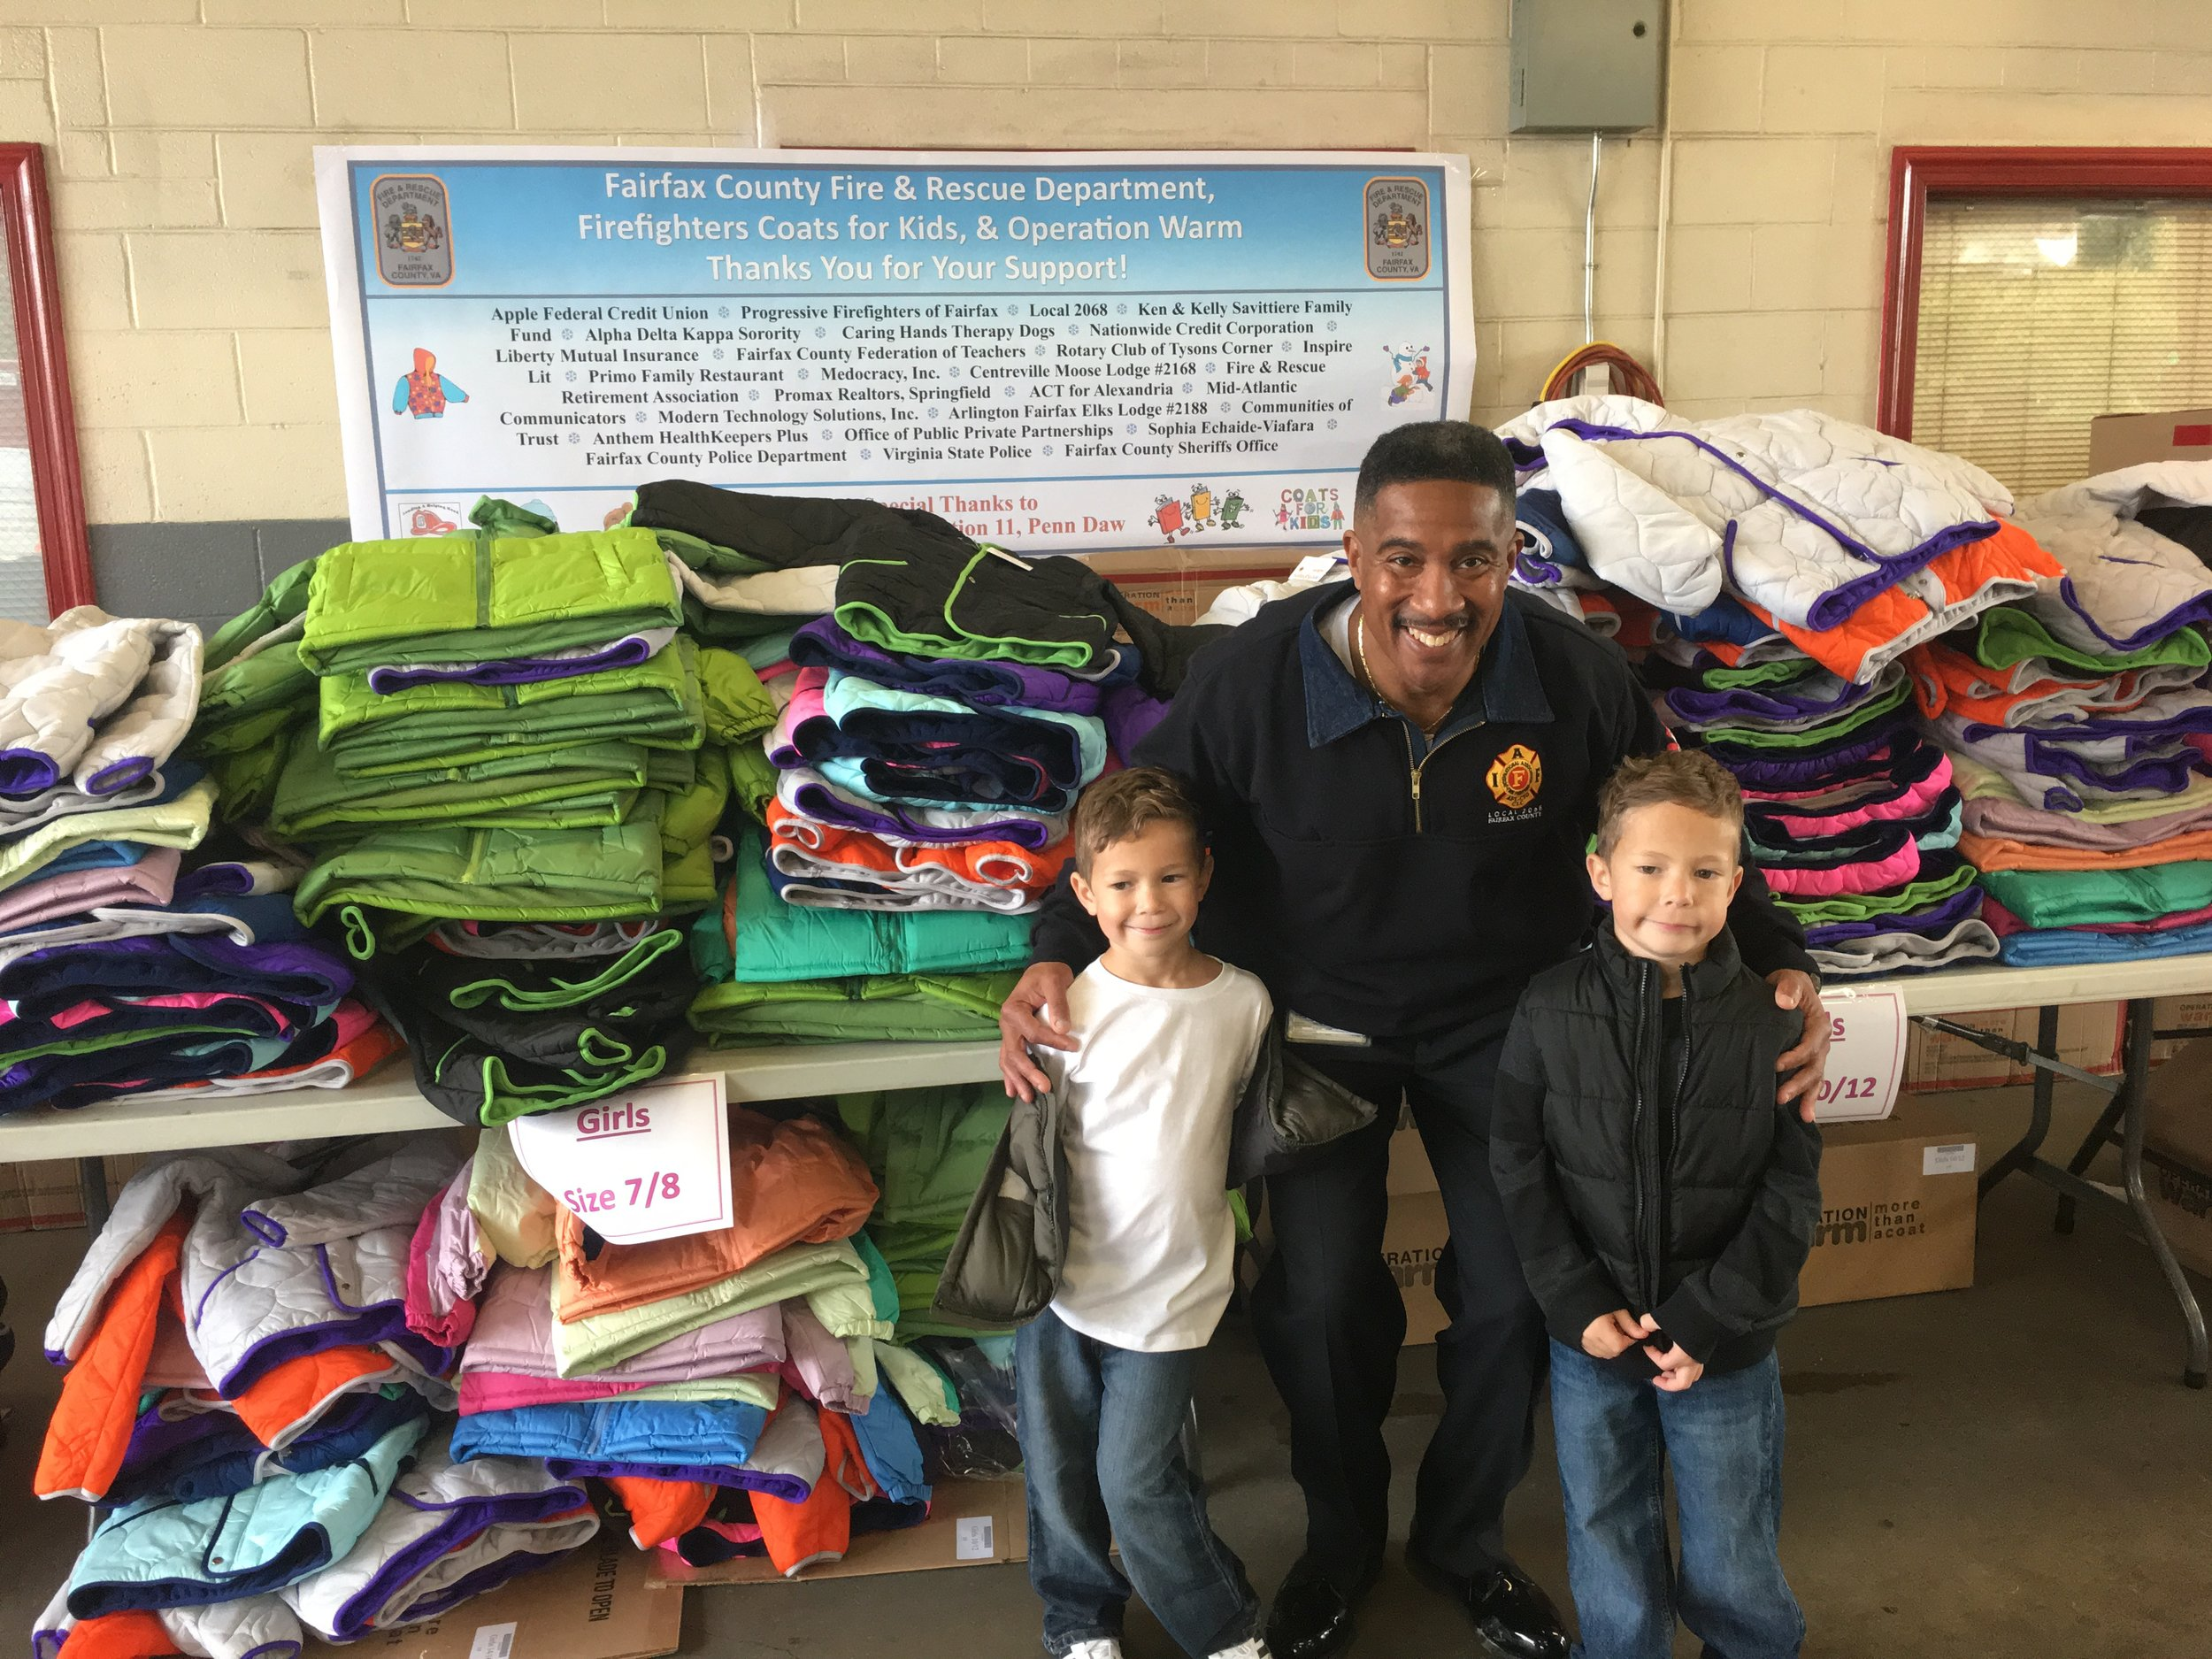 (Left to Right) Maks Savittiere, Chief Willie Bailey, Madden Savittiere at the Coat Drive Oct. 2016